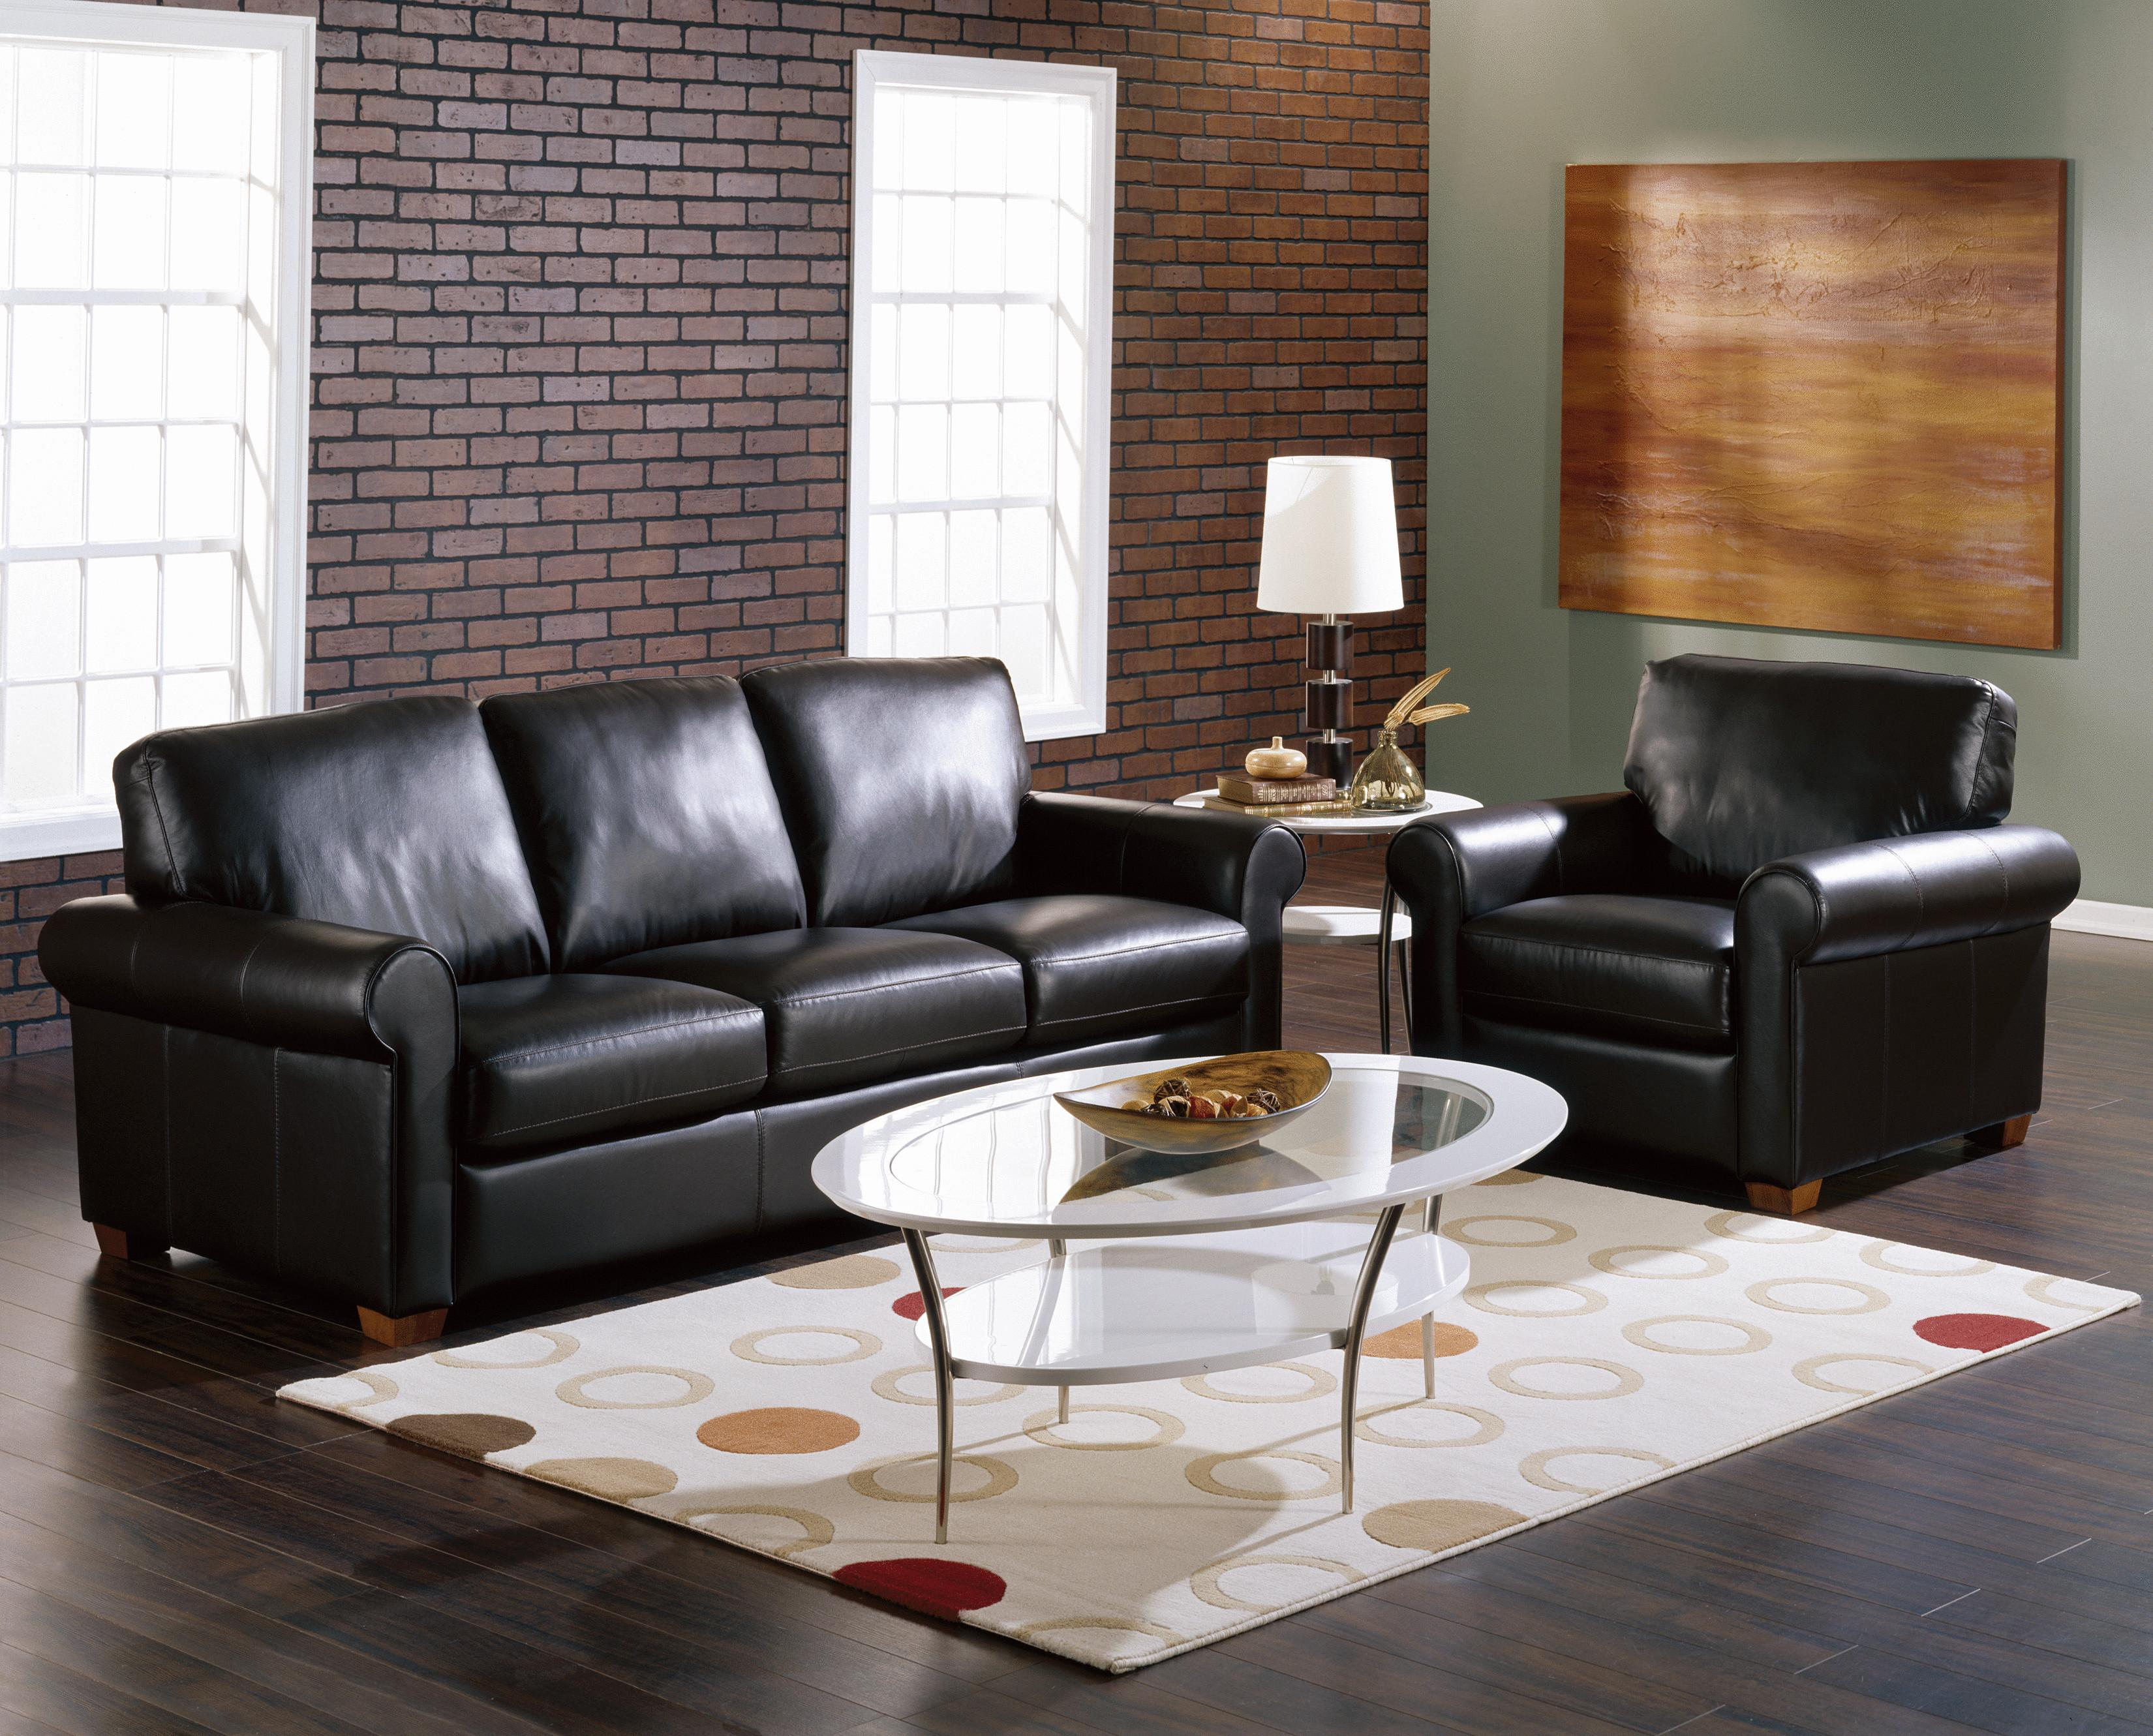 Dixie Transitional 2 pc Sectional Sofa with LHF Sofa Split